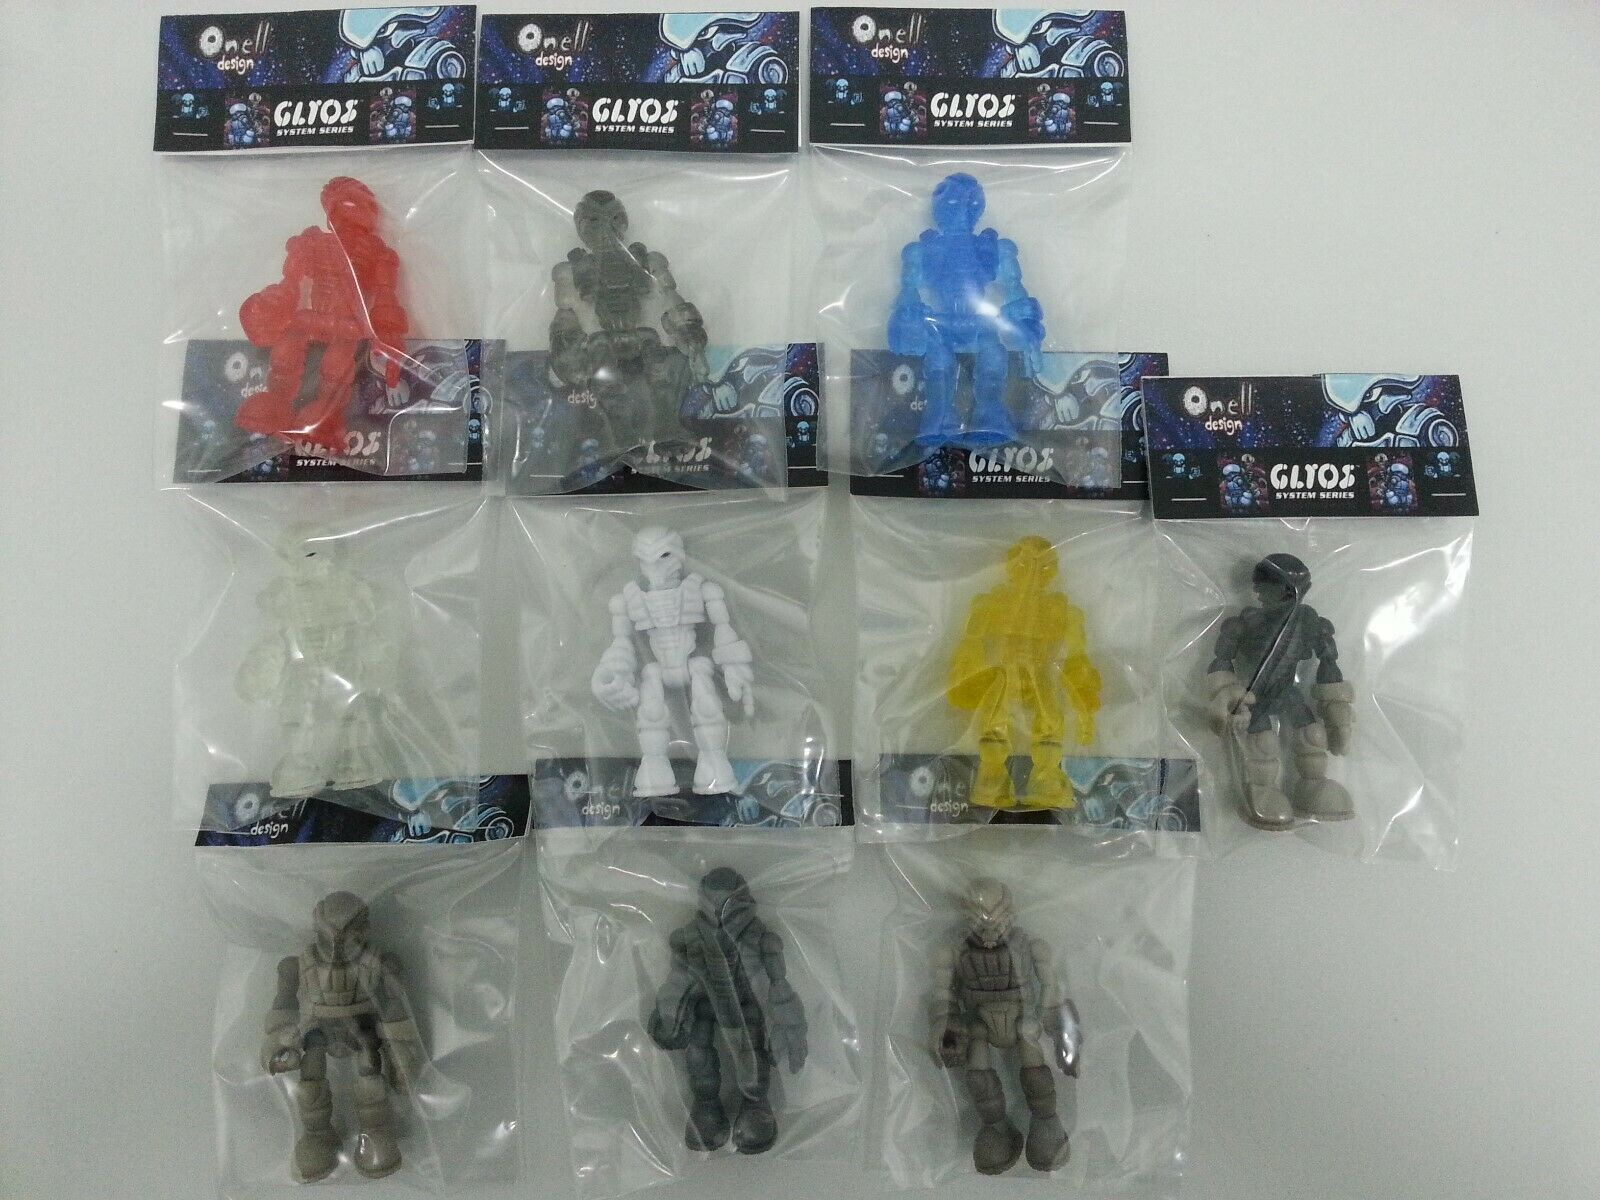 Onelldesign Glyos Glyos Glyos Exellis Lot Of 10 Action Figures 0e19bc